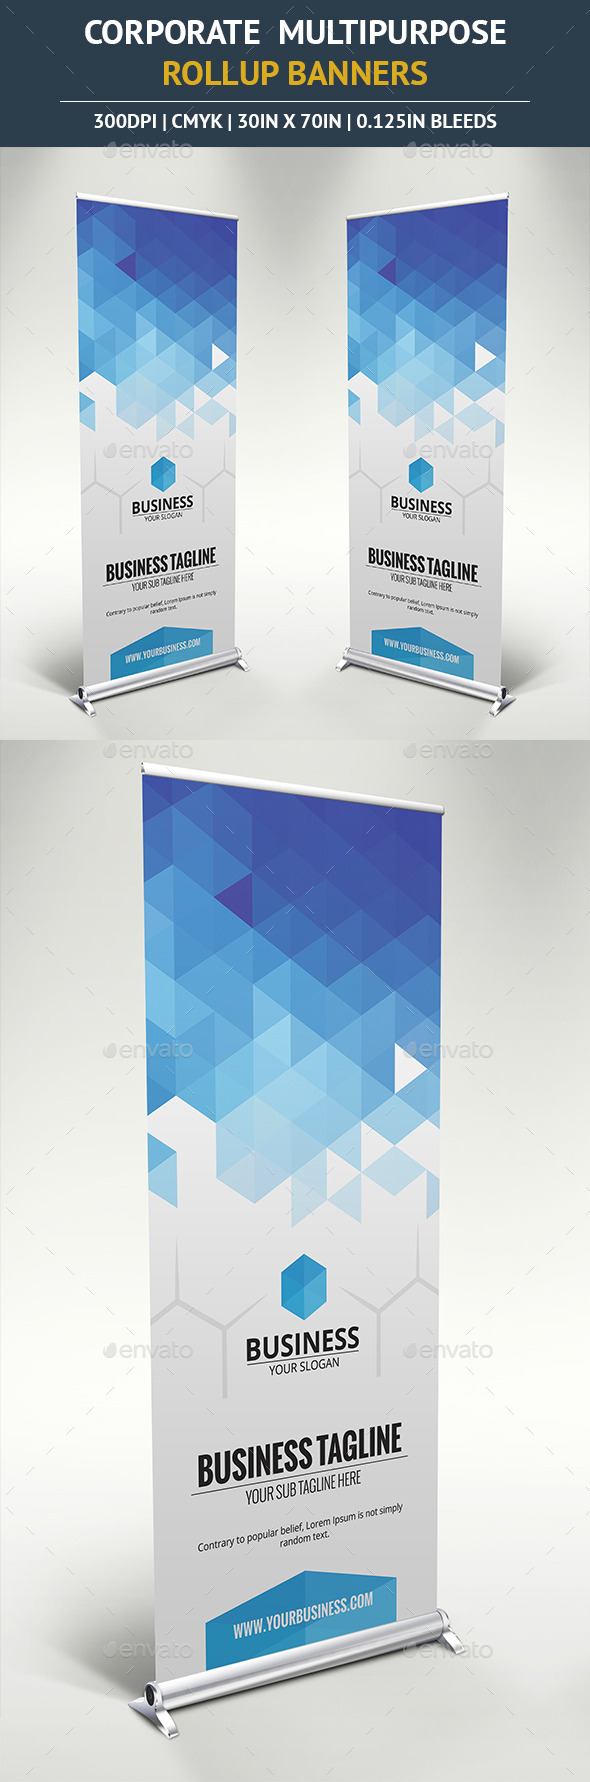 GraphicRiver Corporate Rollup Banner vol7 10390843